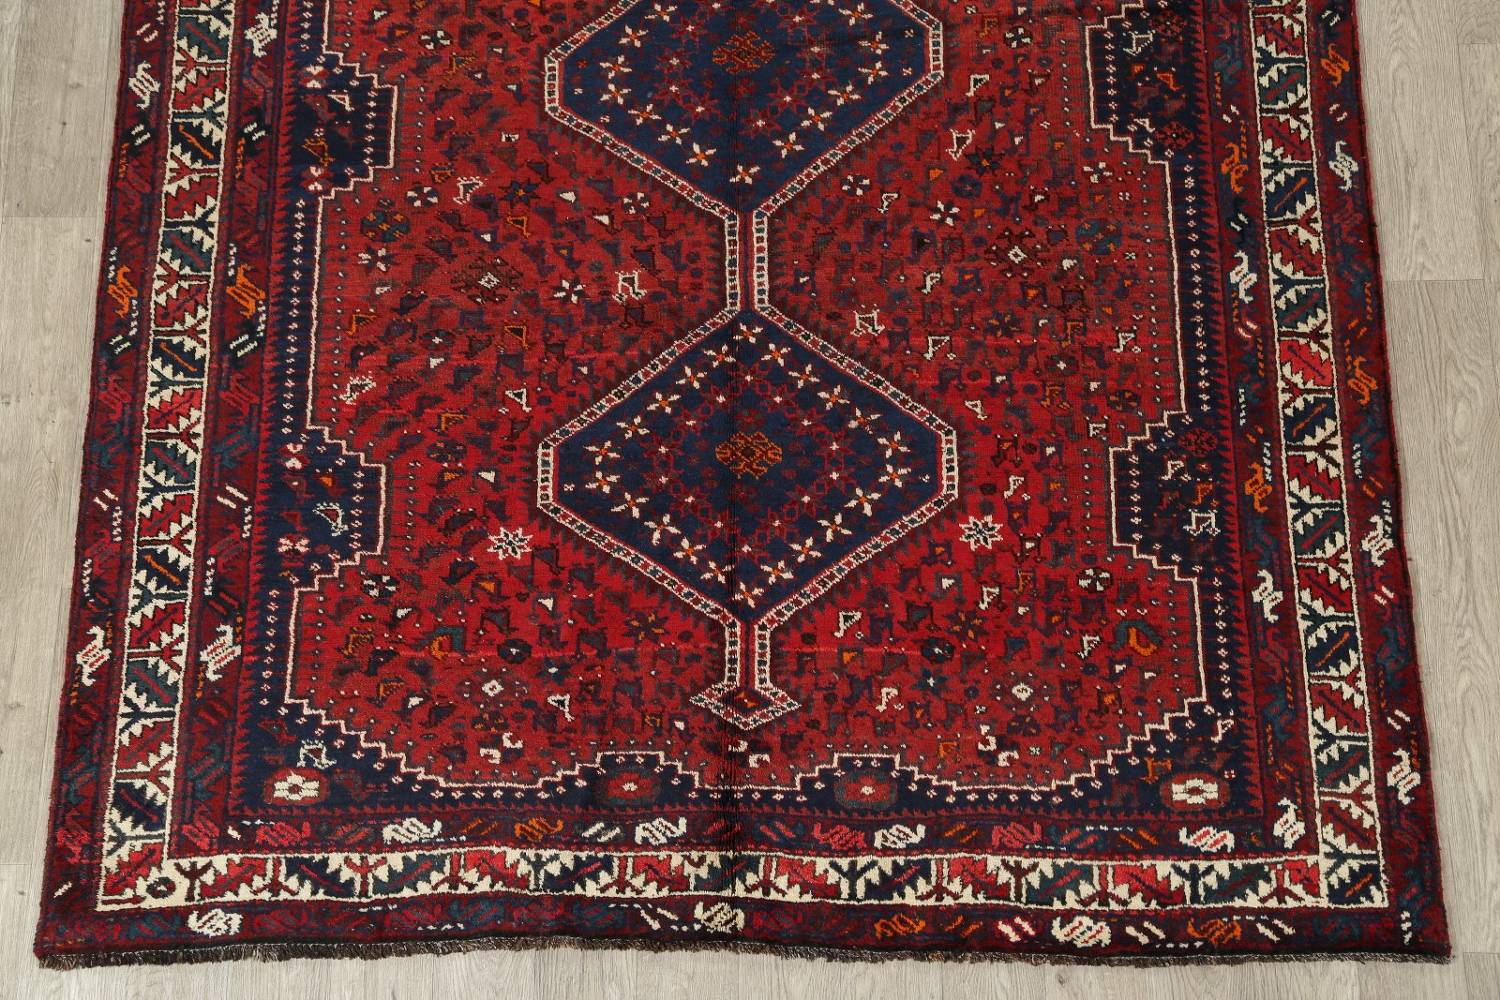 Antique Tribal Qashqai Persian Hand-Knotted 7x10 Wool Area Rug image 5